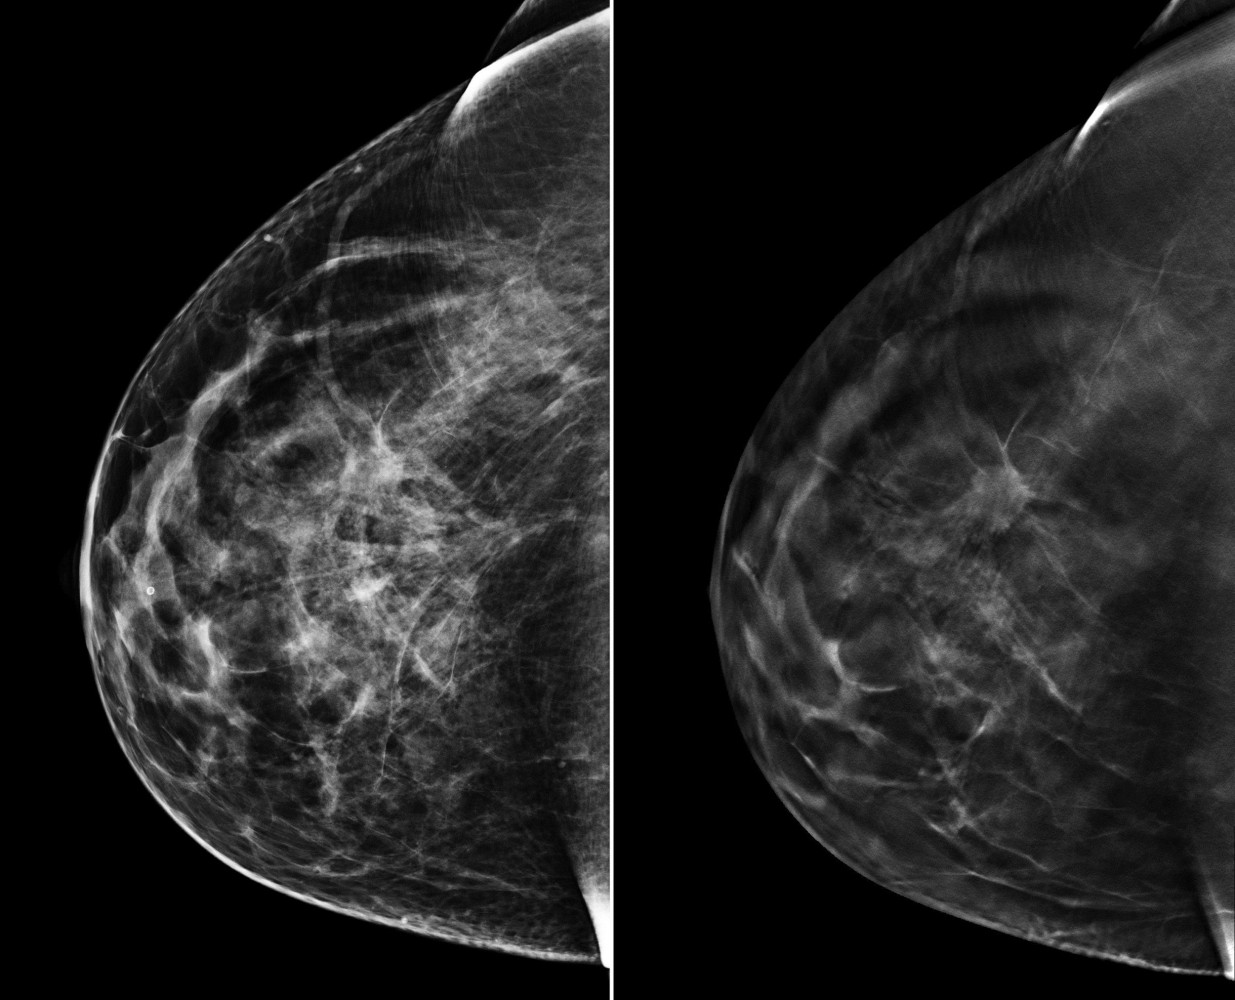 what is digital breast tomosynthesis Find out about digital breast tomosynthesis from cleveland clinic this breast cancer screening test is beneficial for dense breasts.